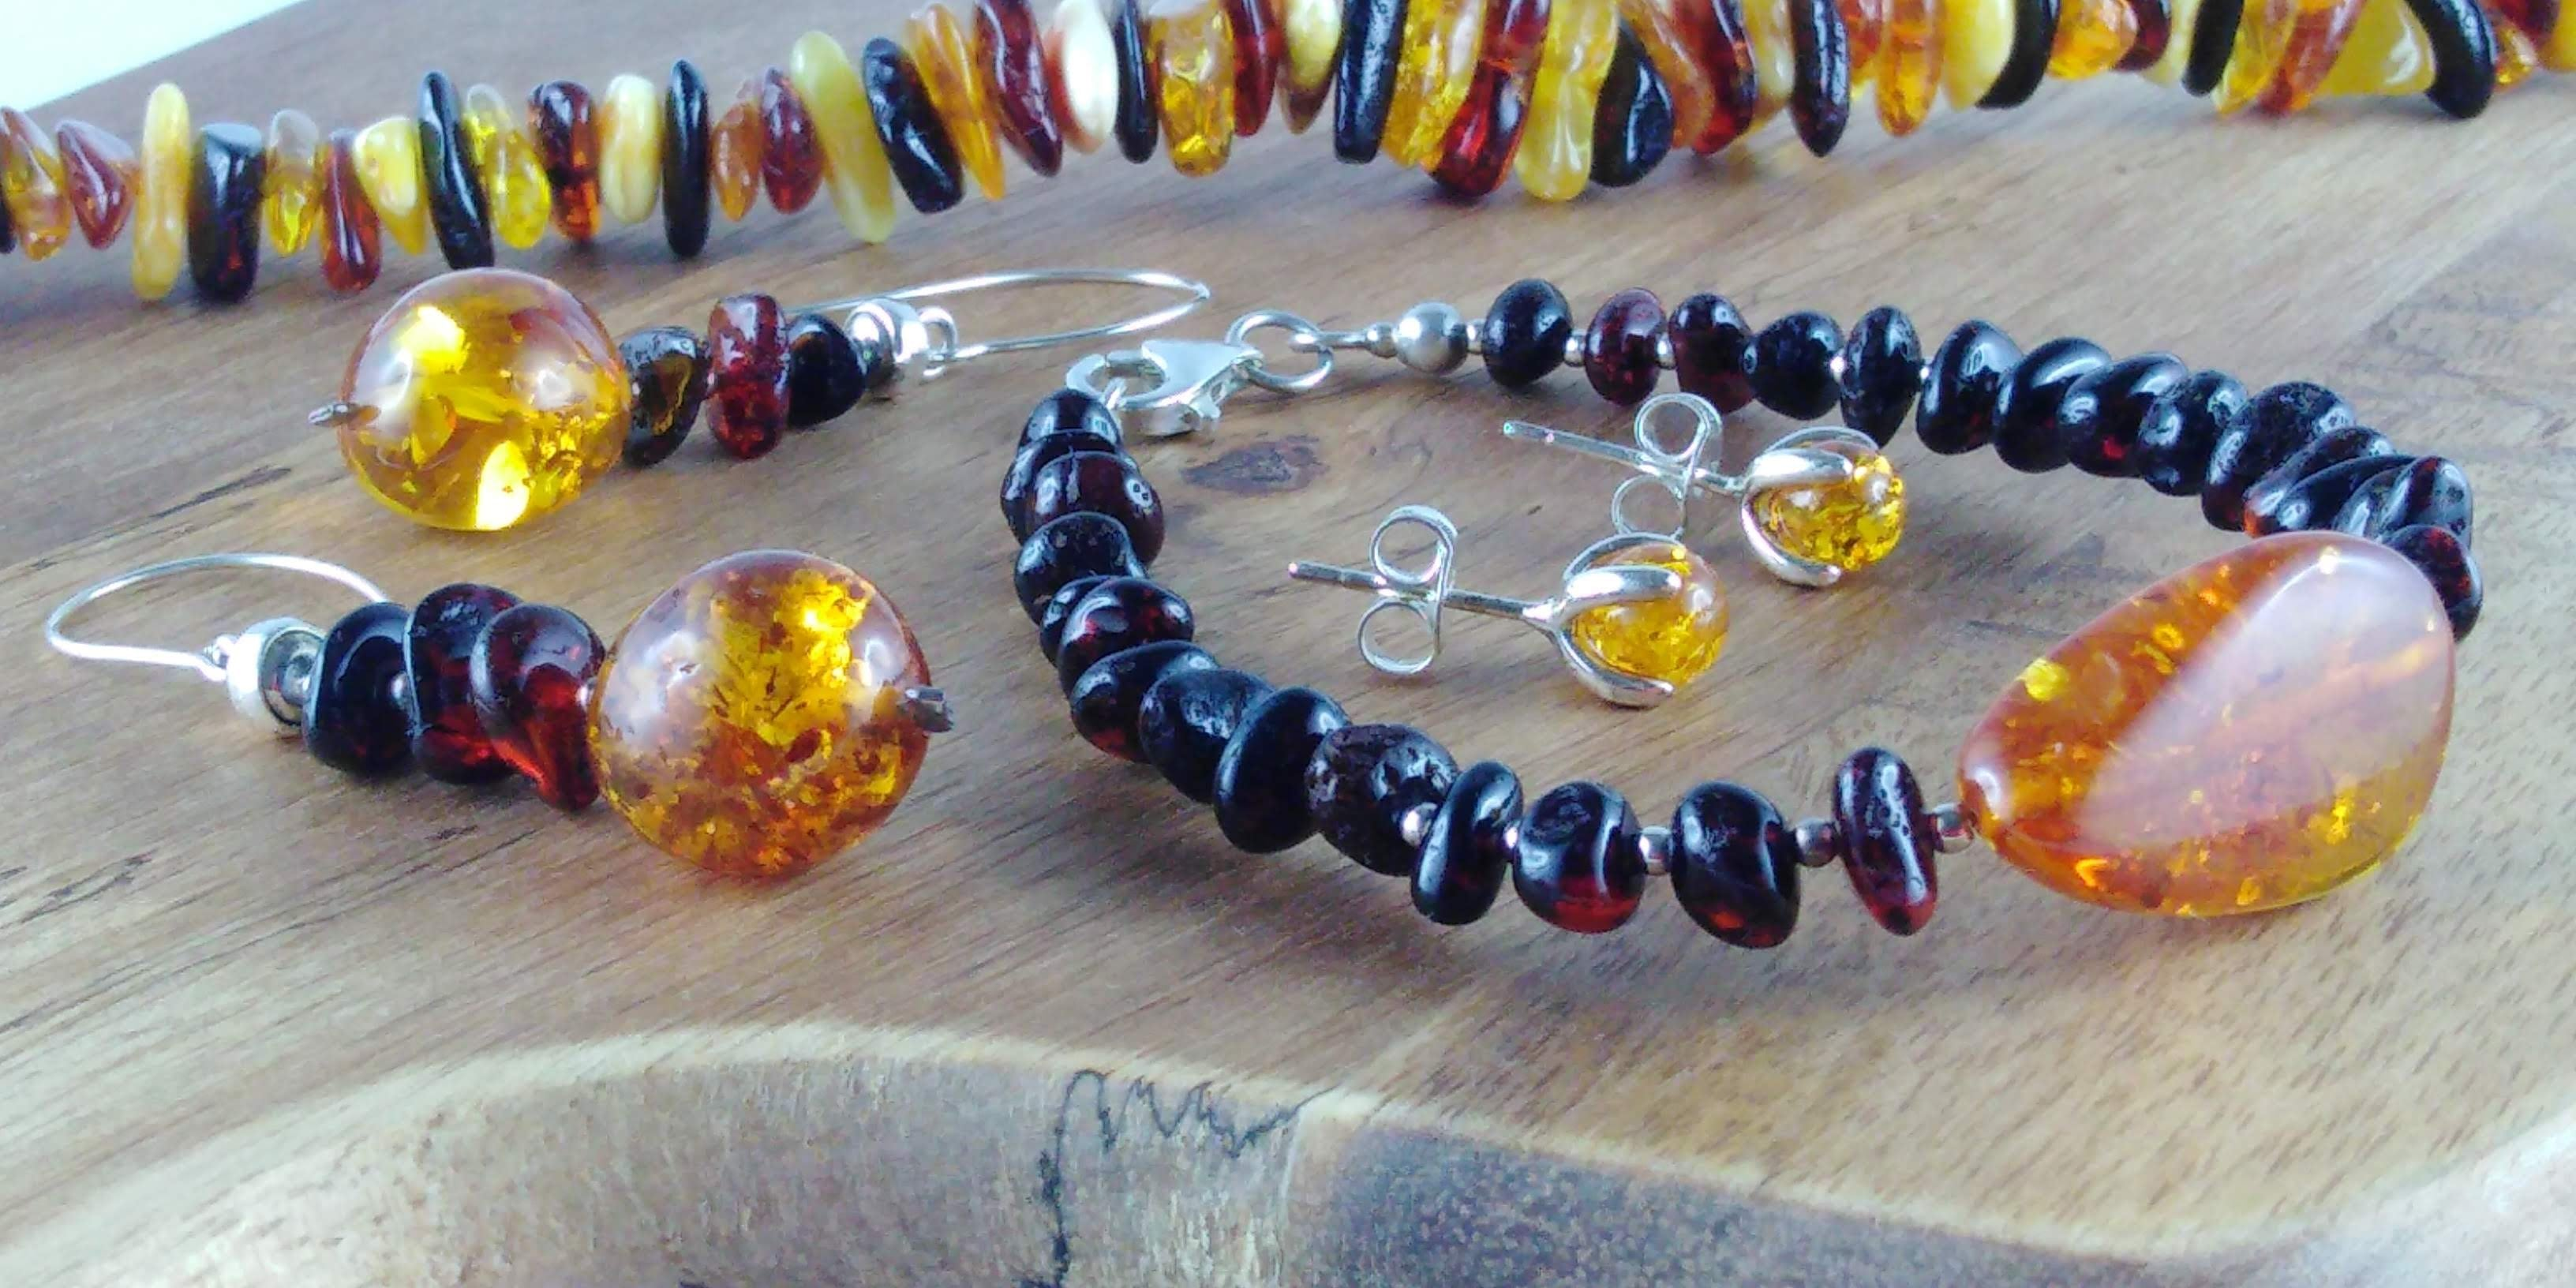 Baltic amber necklace, earrings and bracelet in sterling silver on flat wood board